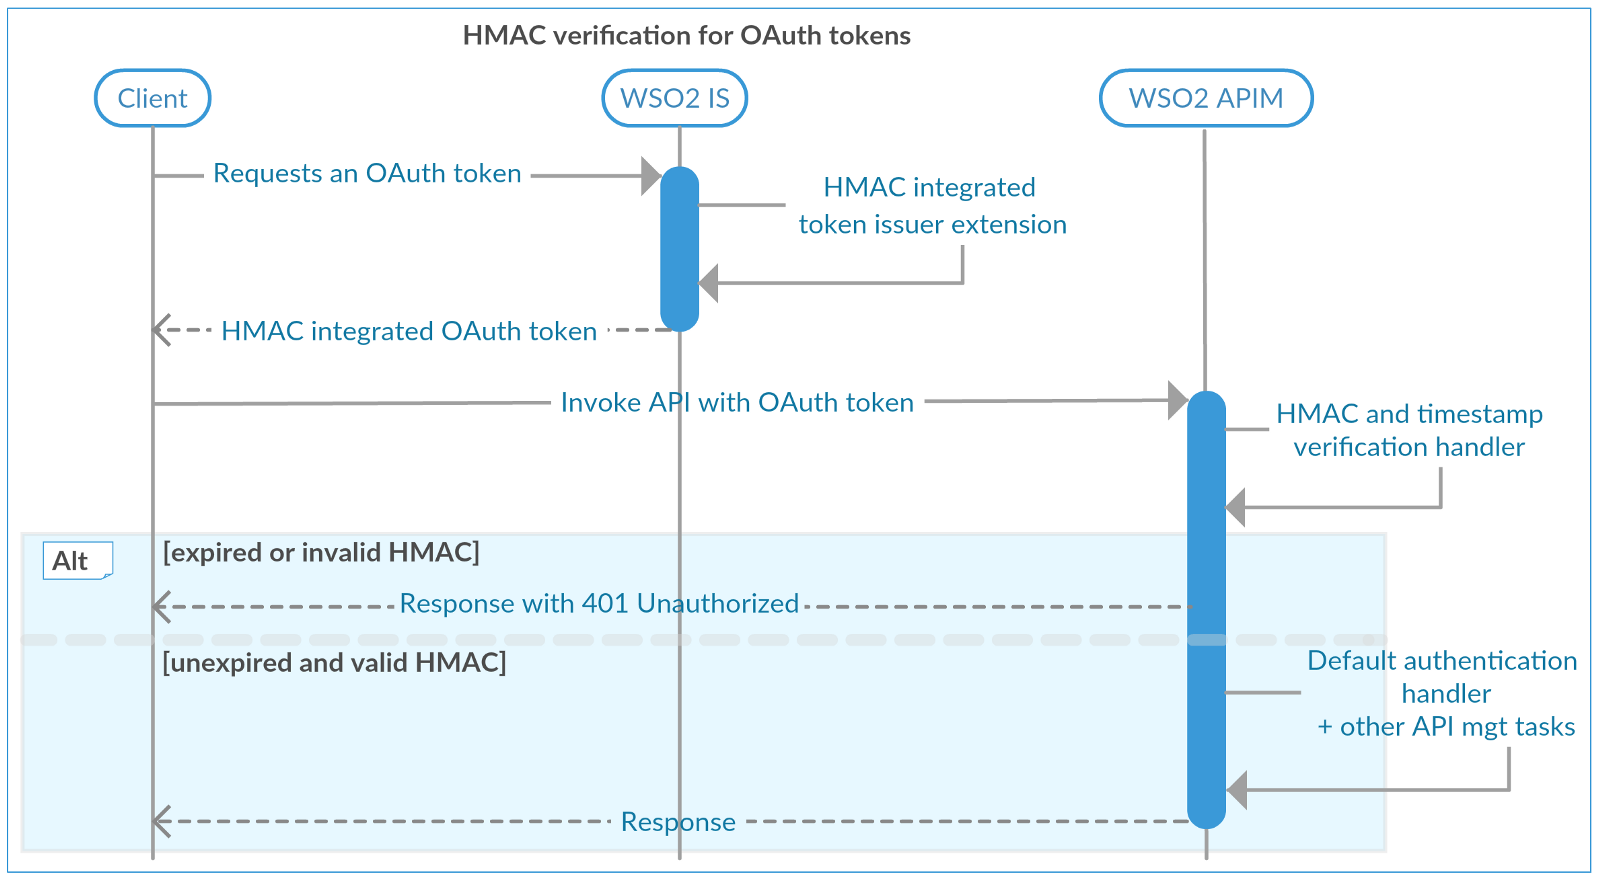 How to Improve OAuth Security With HMAC Validation - DZone Security